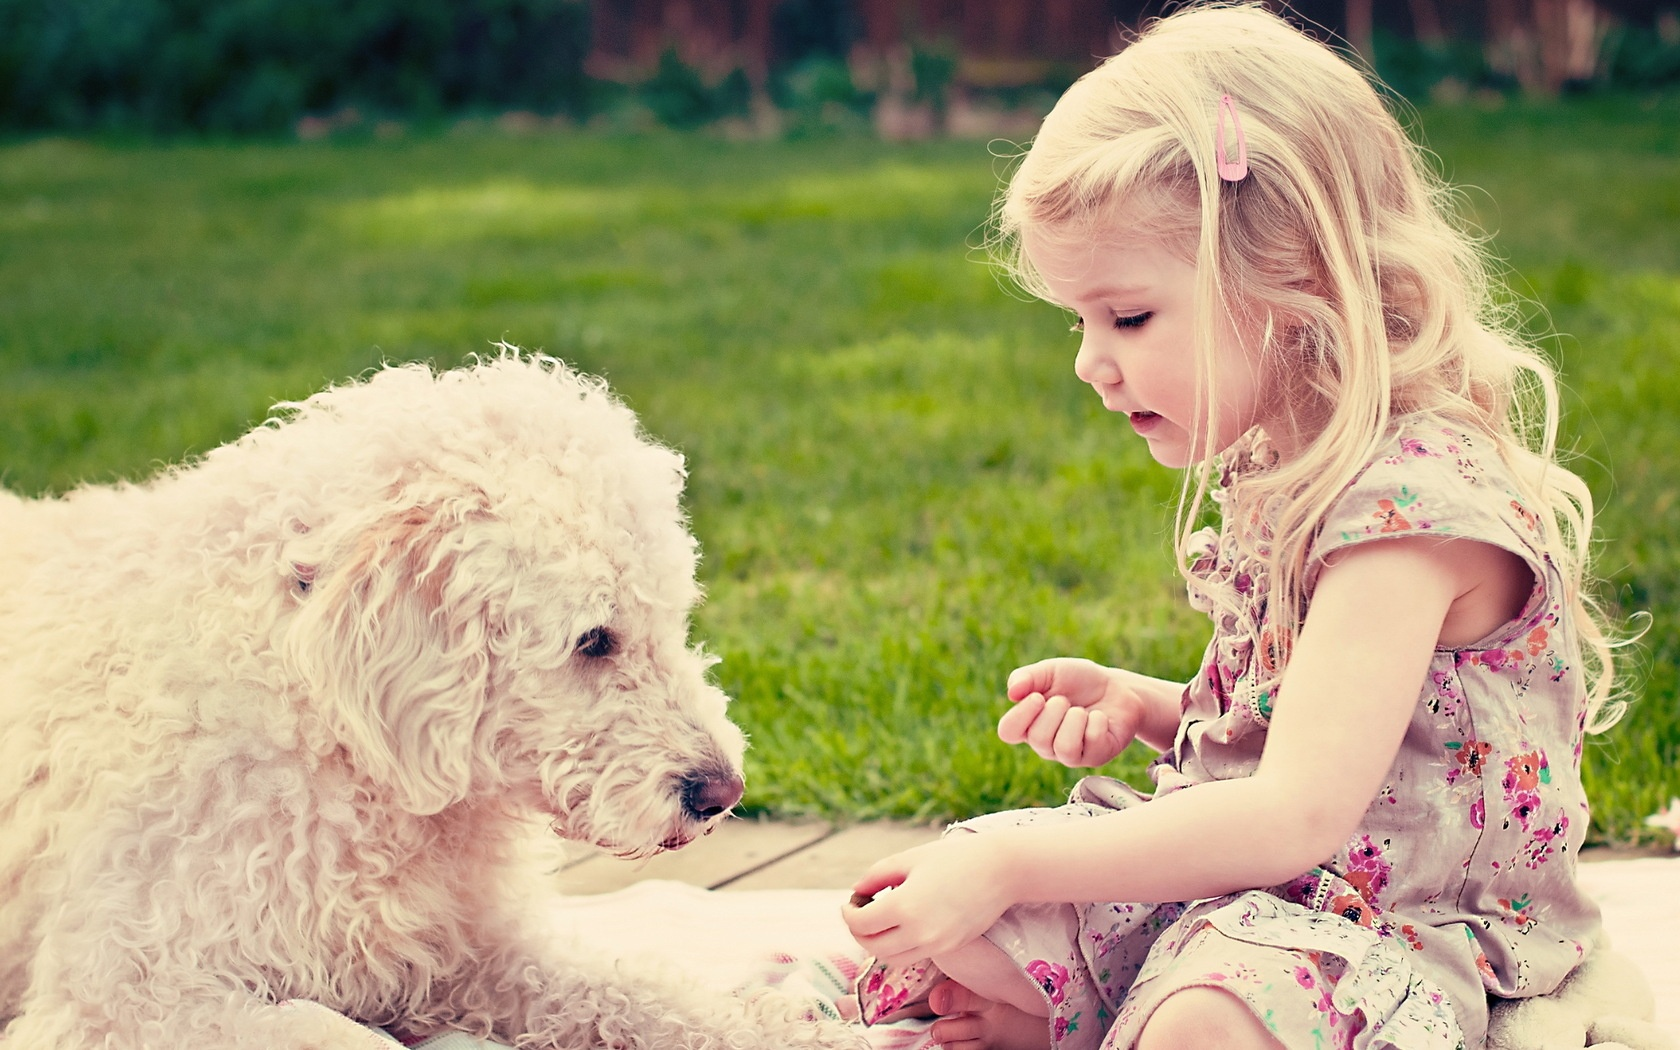 Cute girl and dog 1680 x 1050 download close